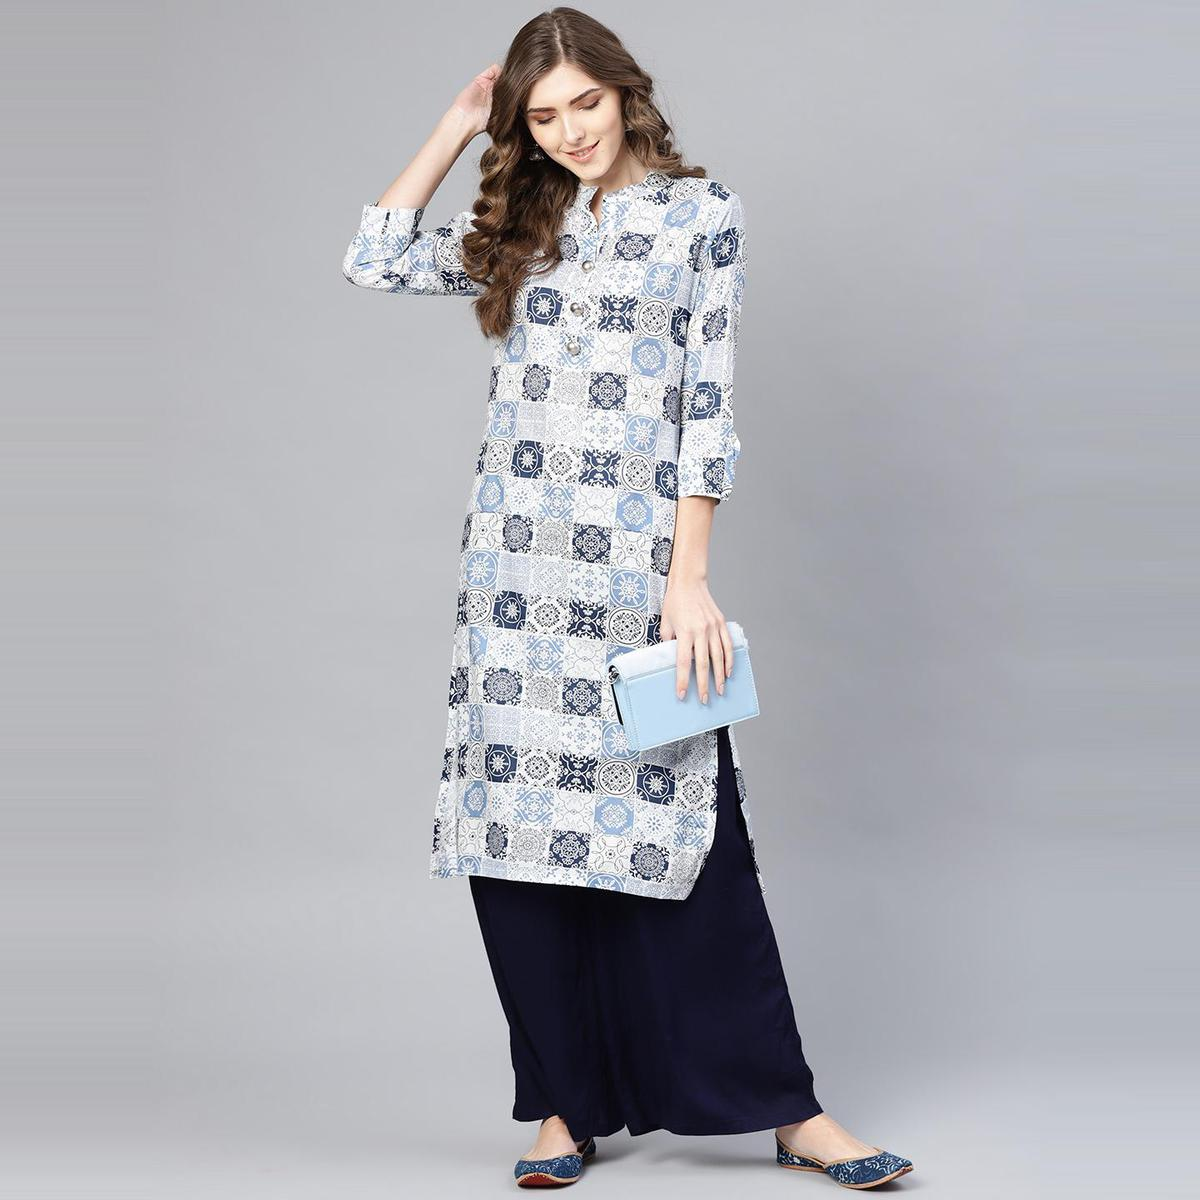 Myshka - Women's White-blue Printed 3/4 Sleeve Collar Neck Cotton Kurti